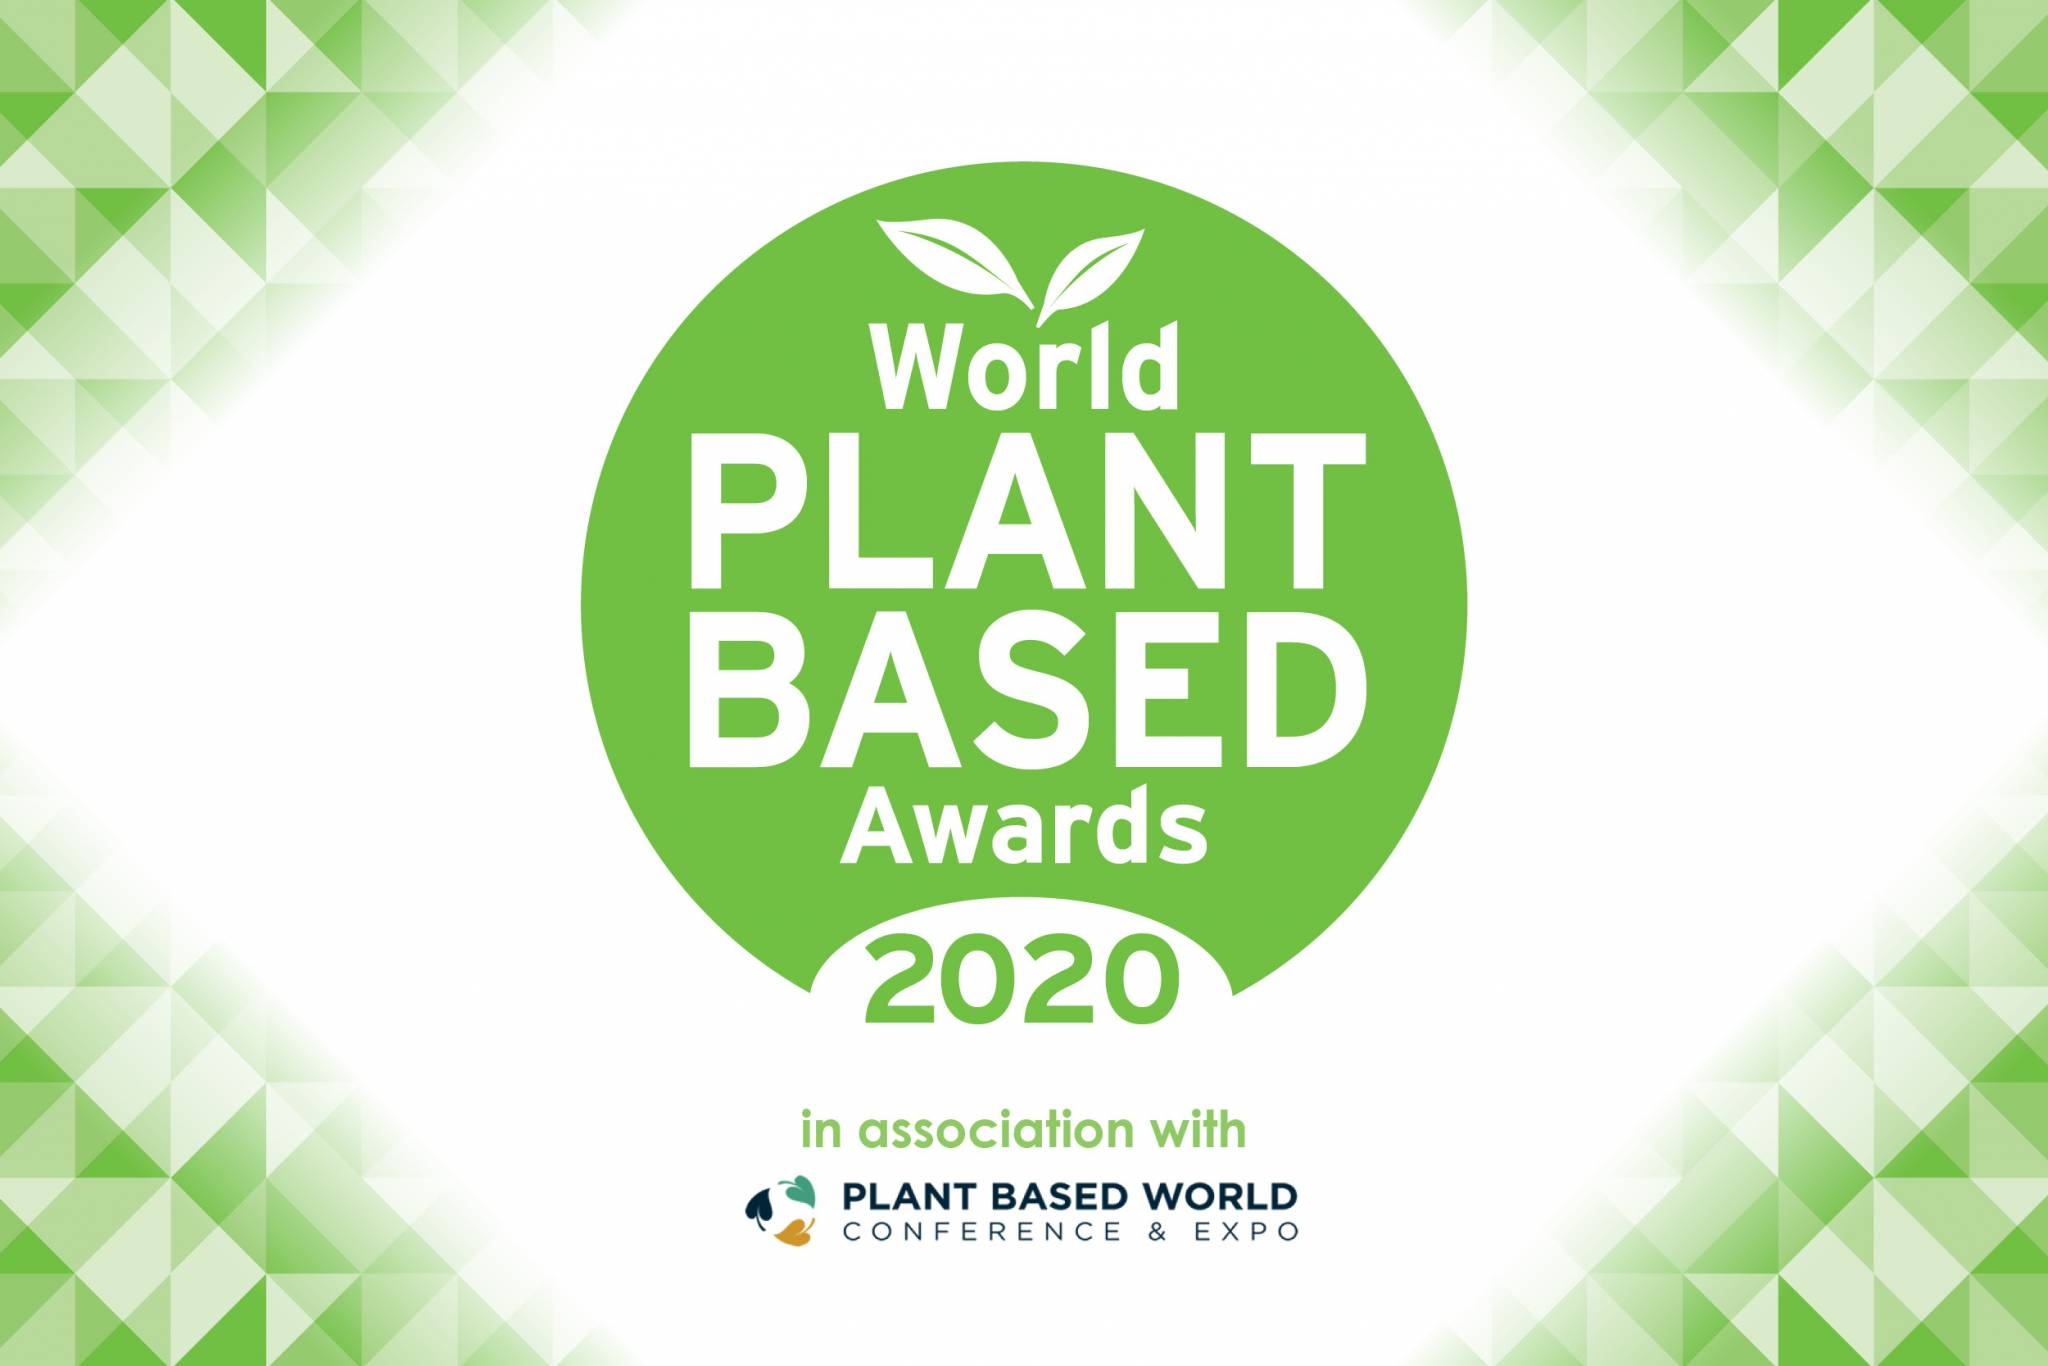 The judges for the World Plant-Based Awards 2020 have been announced!